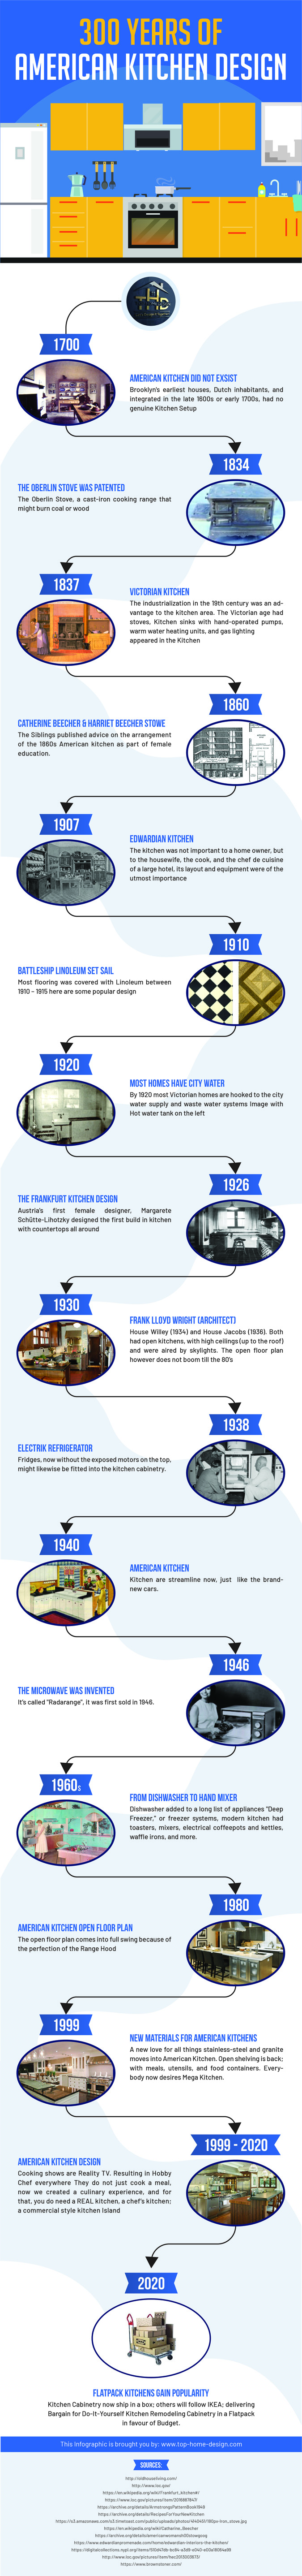 Infographic About 300 Years of American Kitchen